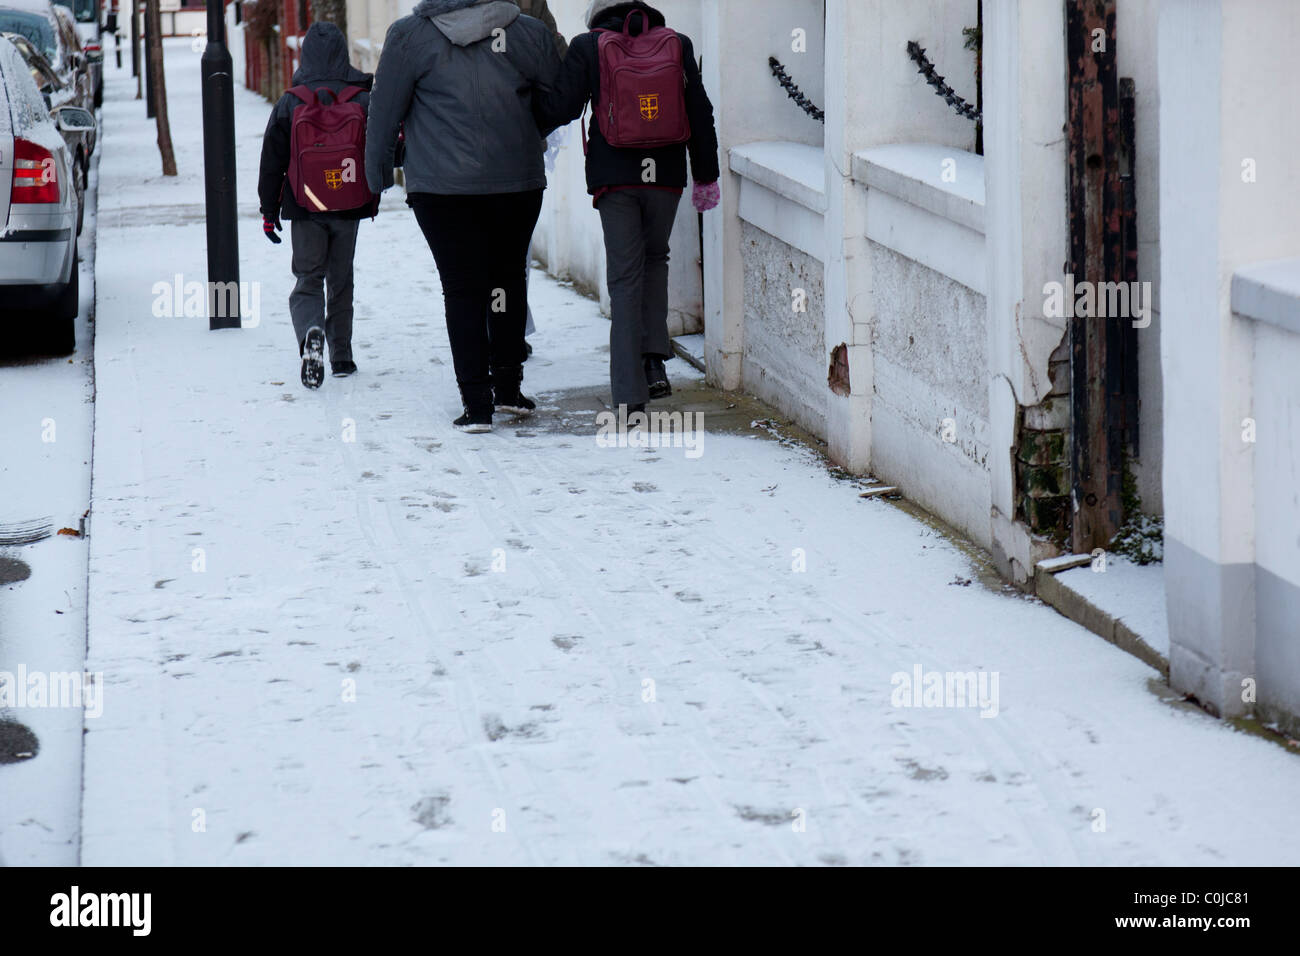 Mother and school children walking in snow covered street - Stock Image